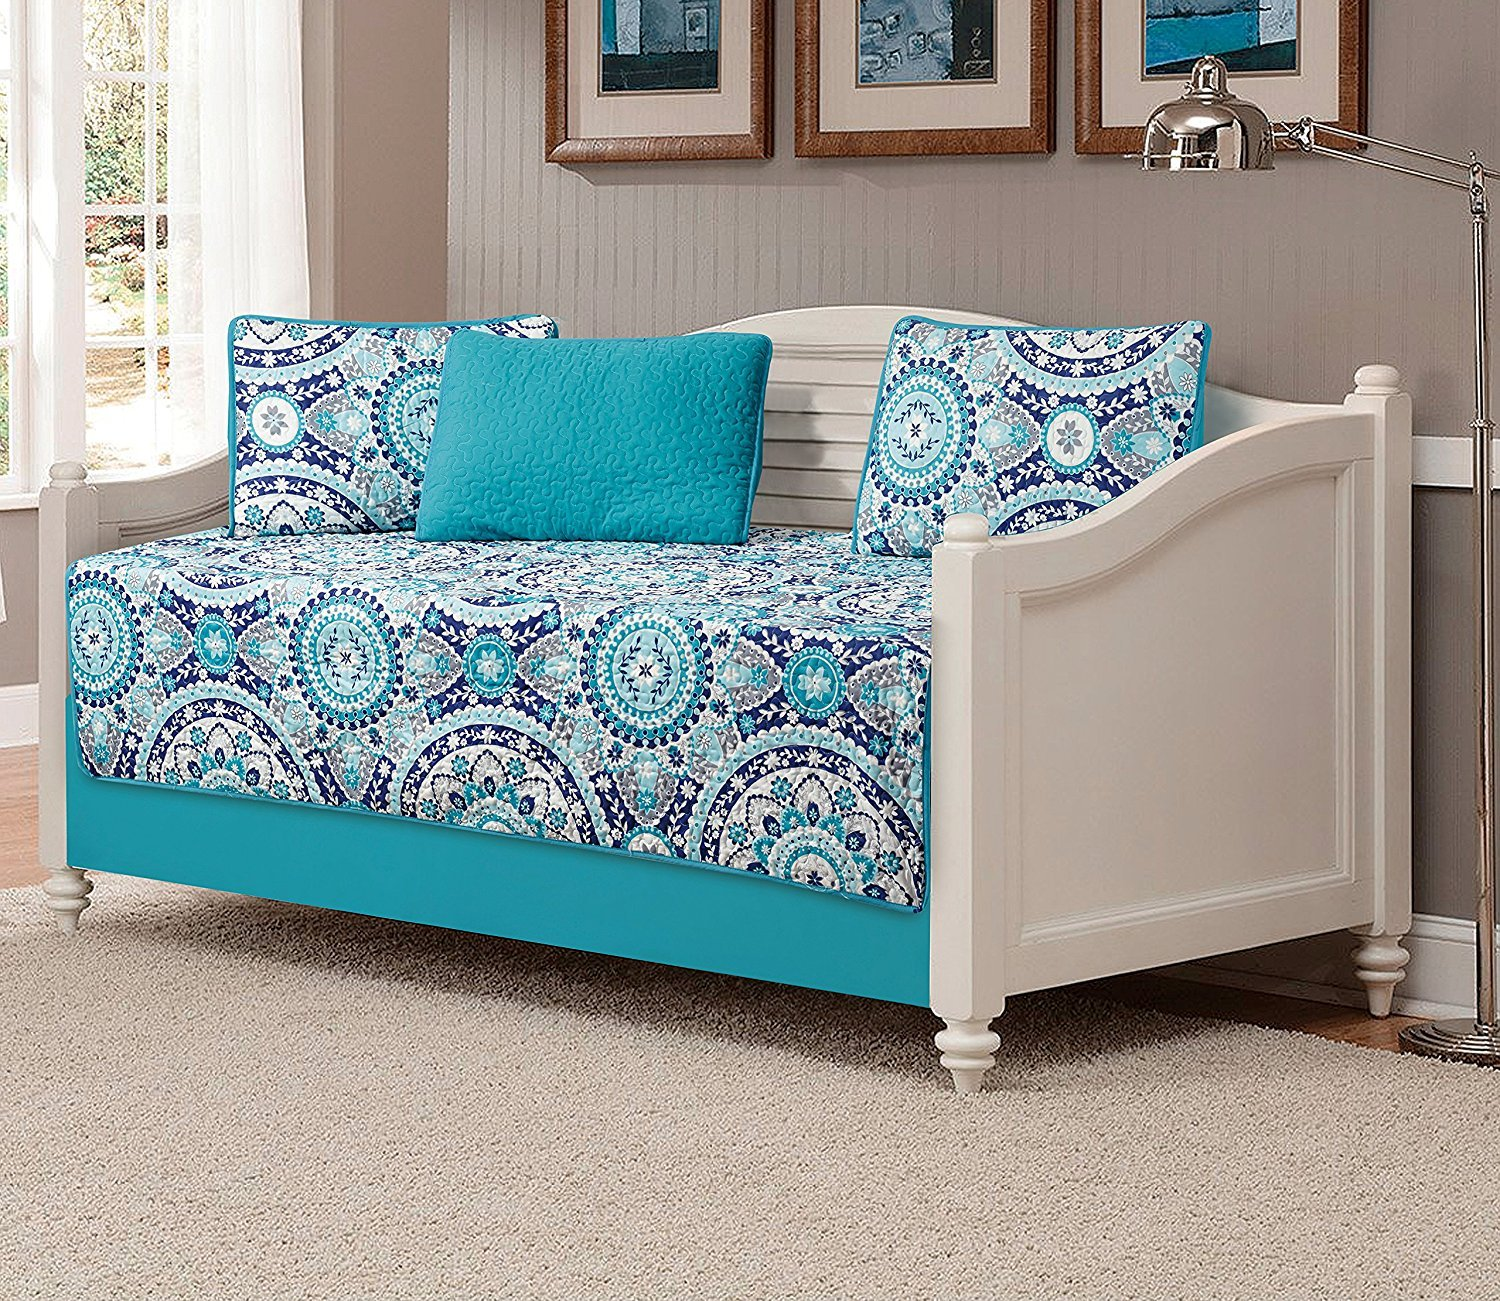 Fancy Collection 5pc DayBed Quilted Bedspread Coverlet Set Floral Turquoise Blue Gray Teal New